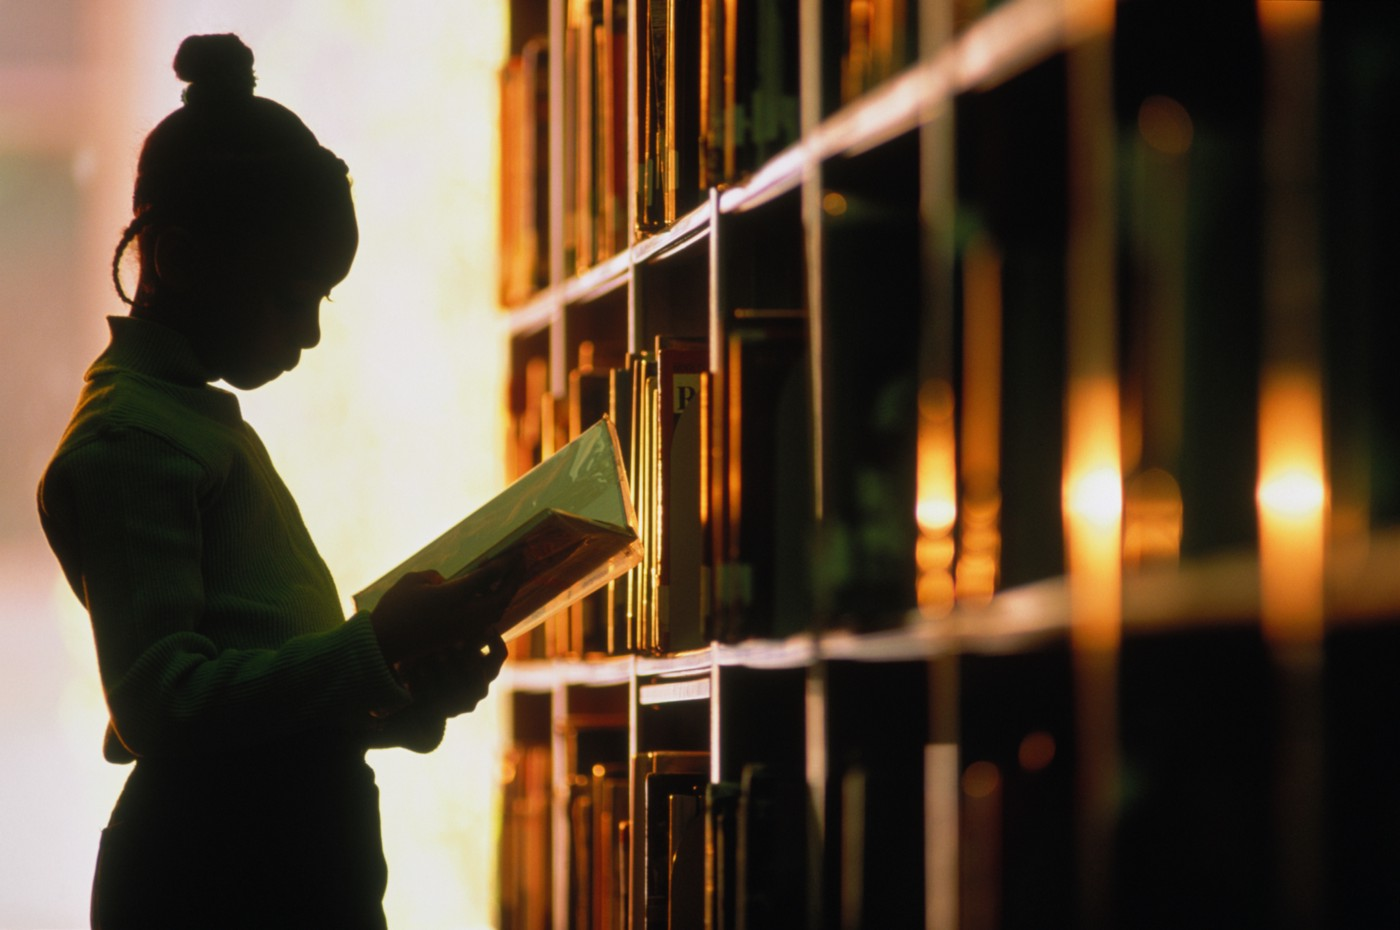 Young Black girl reads a book in school library.